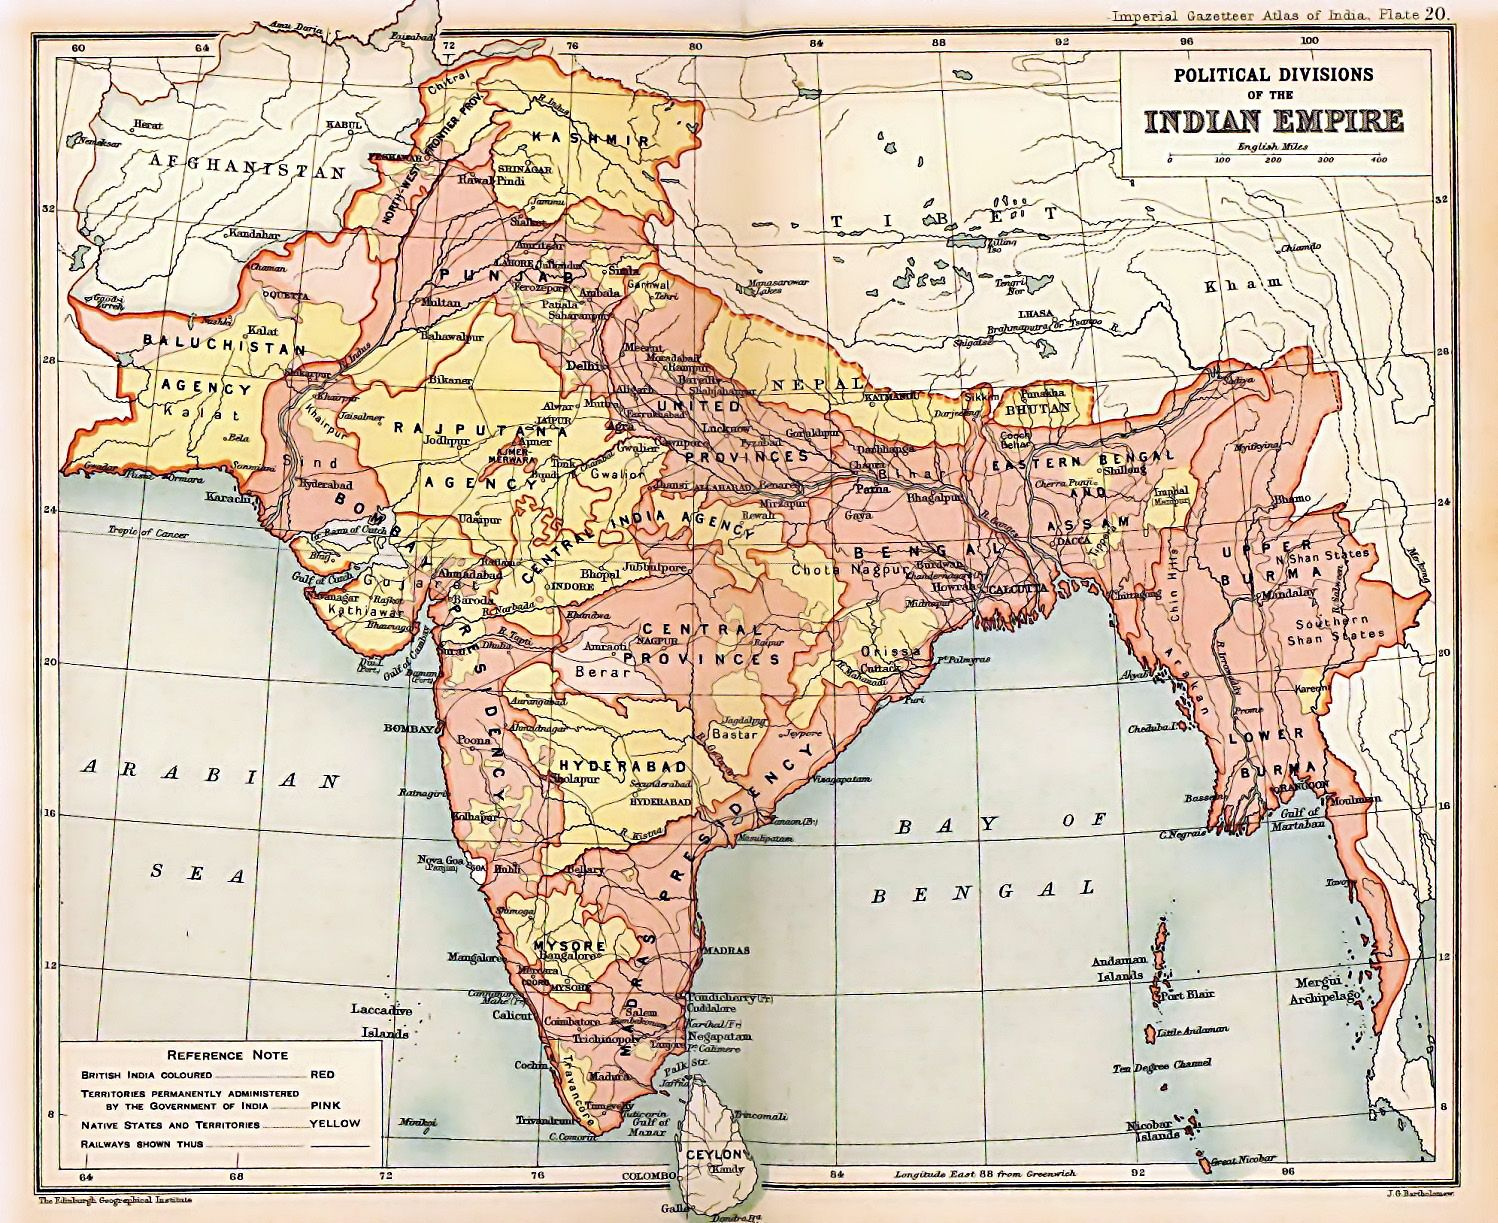 Amongst all, this is my favourite map of British India. The ... on map of india provinces, india and its states, india fertility rate by state, central british india provinces,